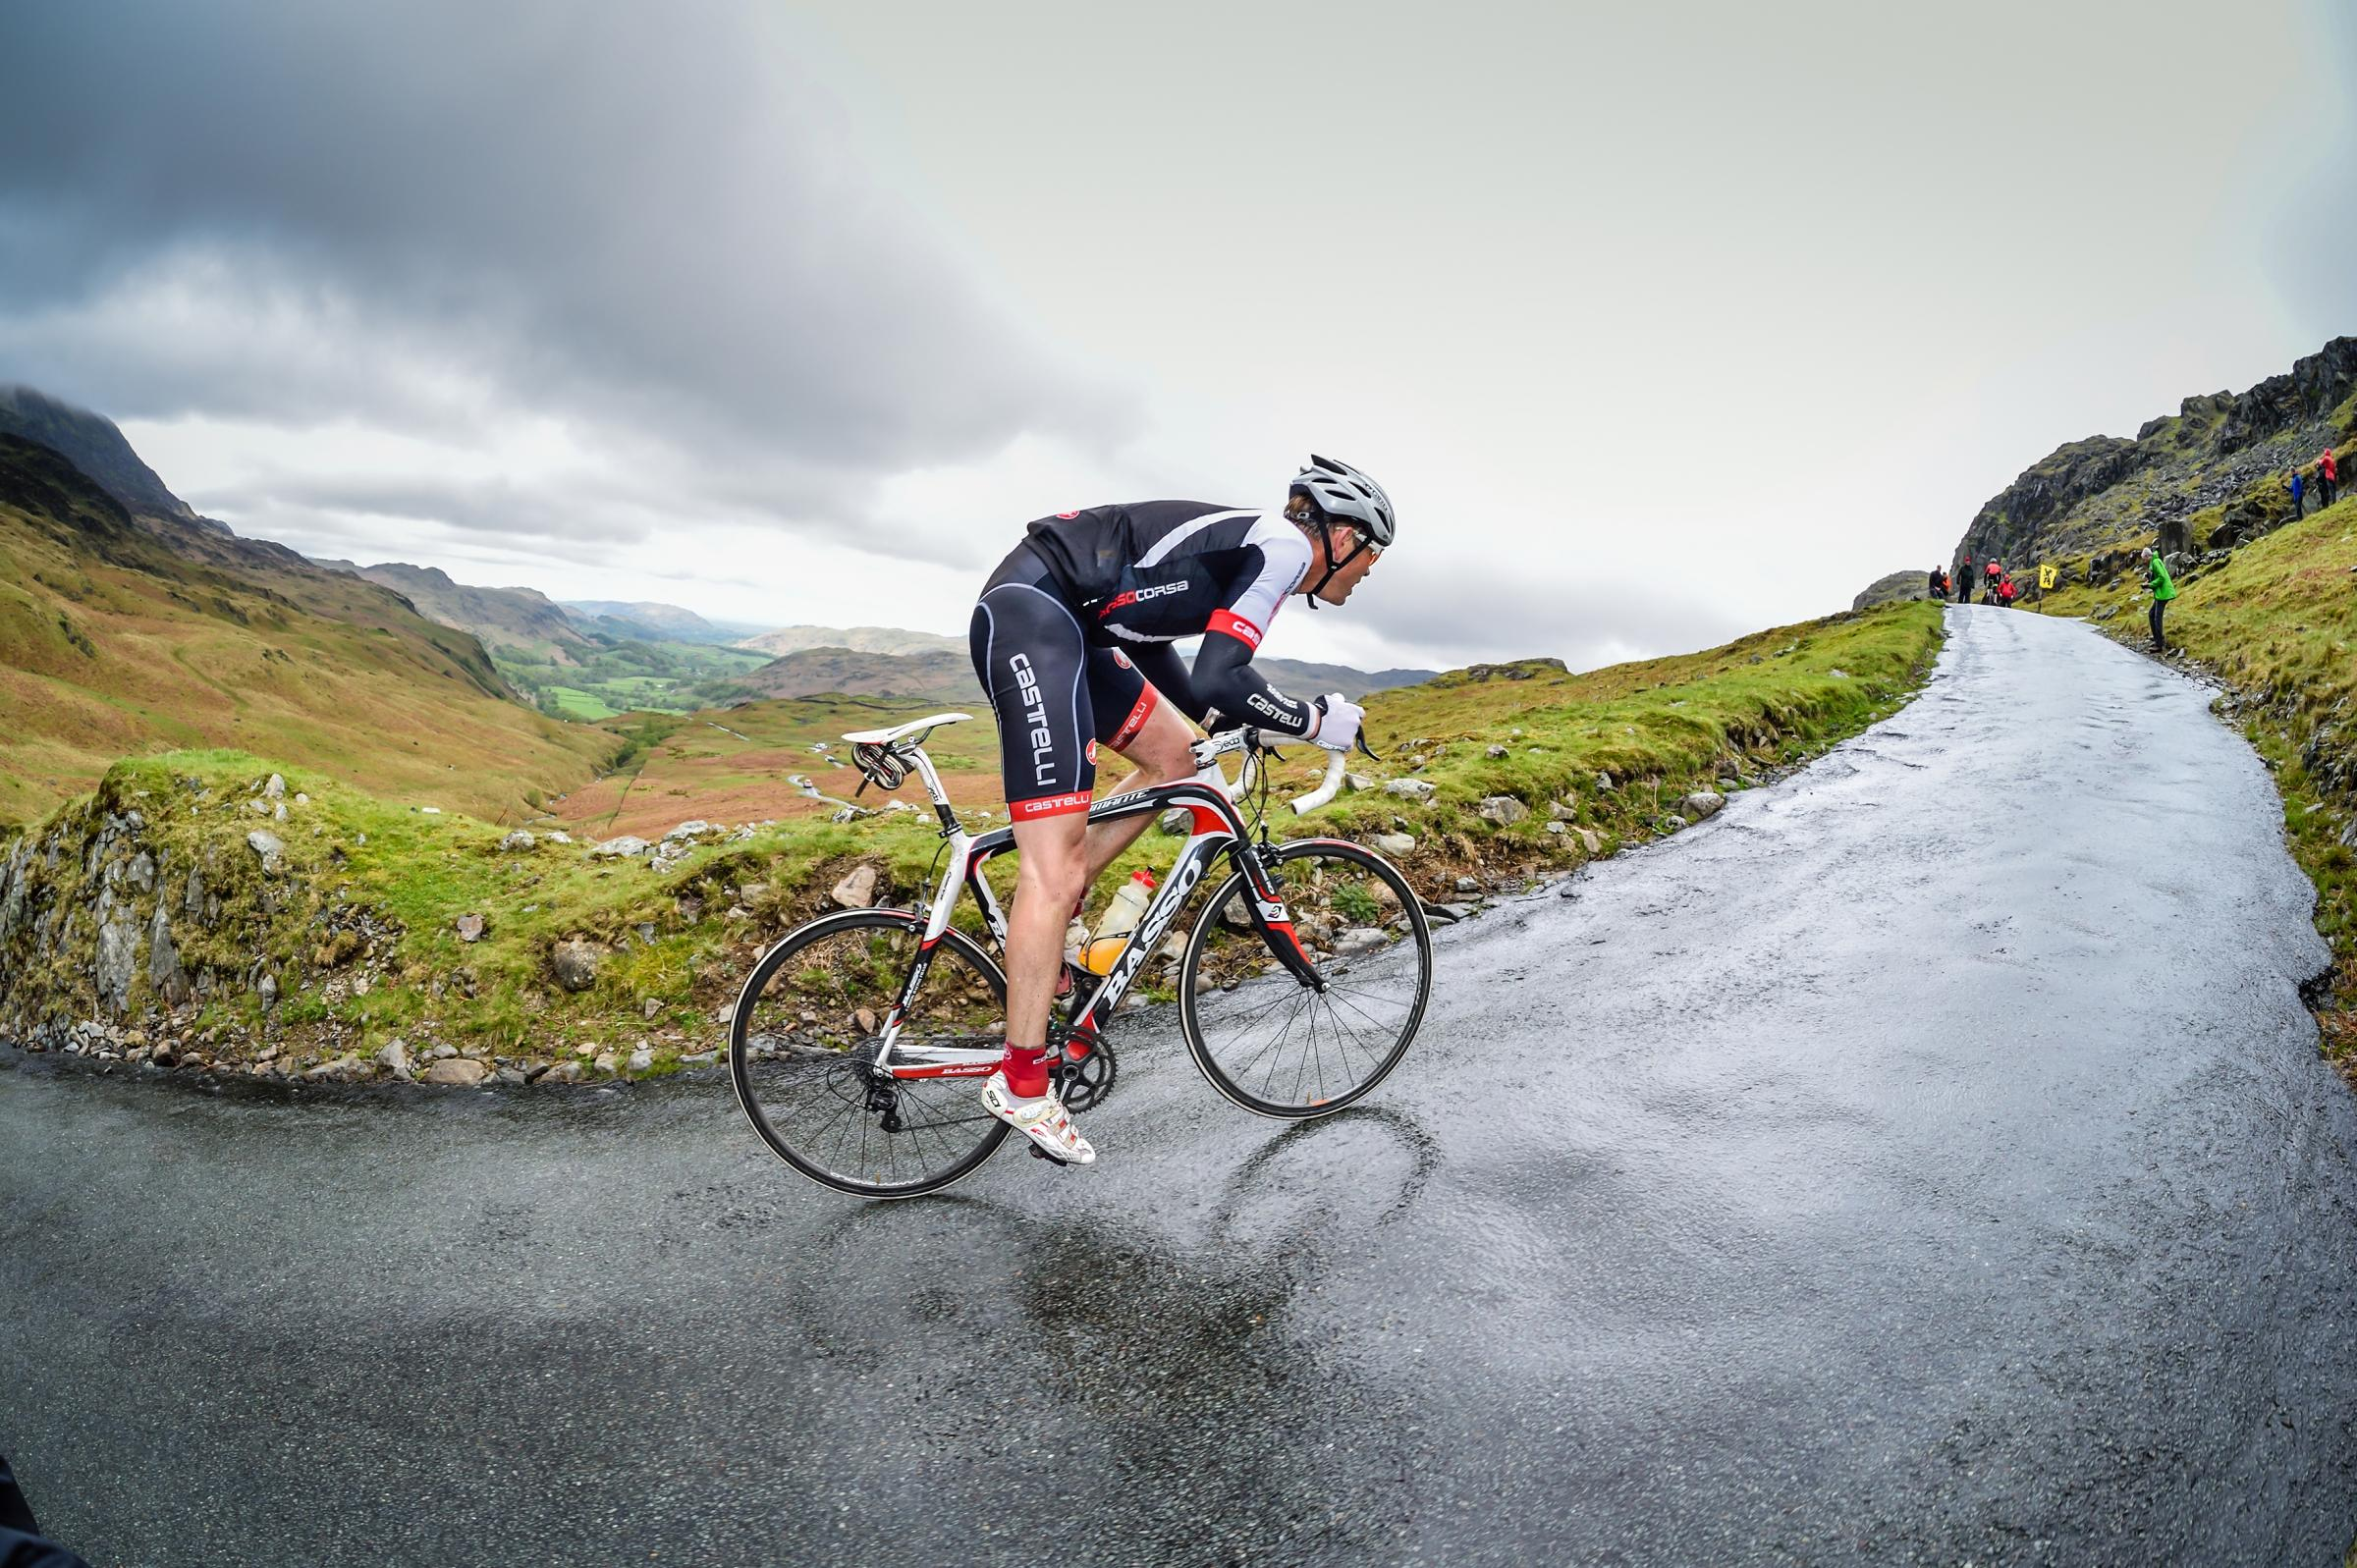 Lakes road Club rider Andy Sudell up for more Fred Whitton Challenges after sealing second victory